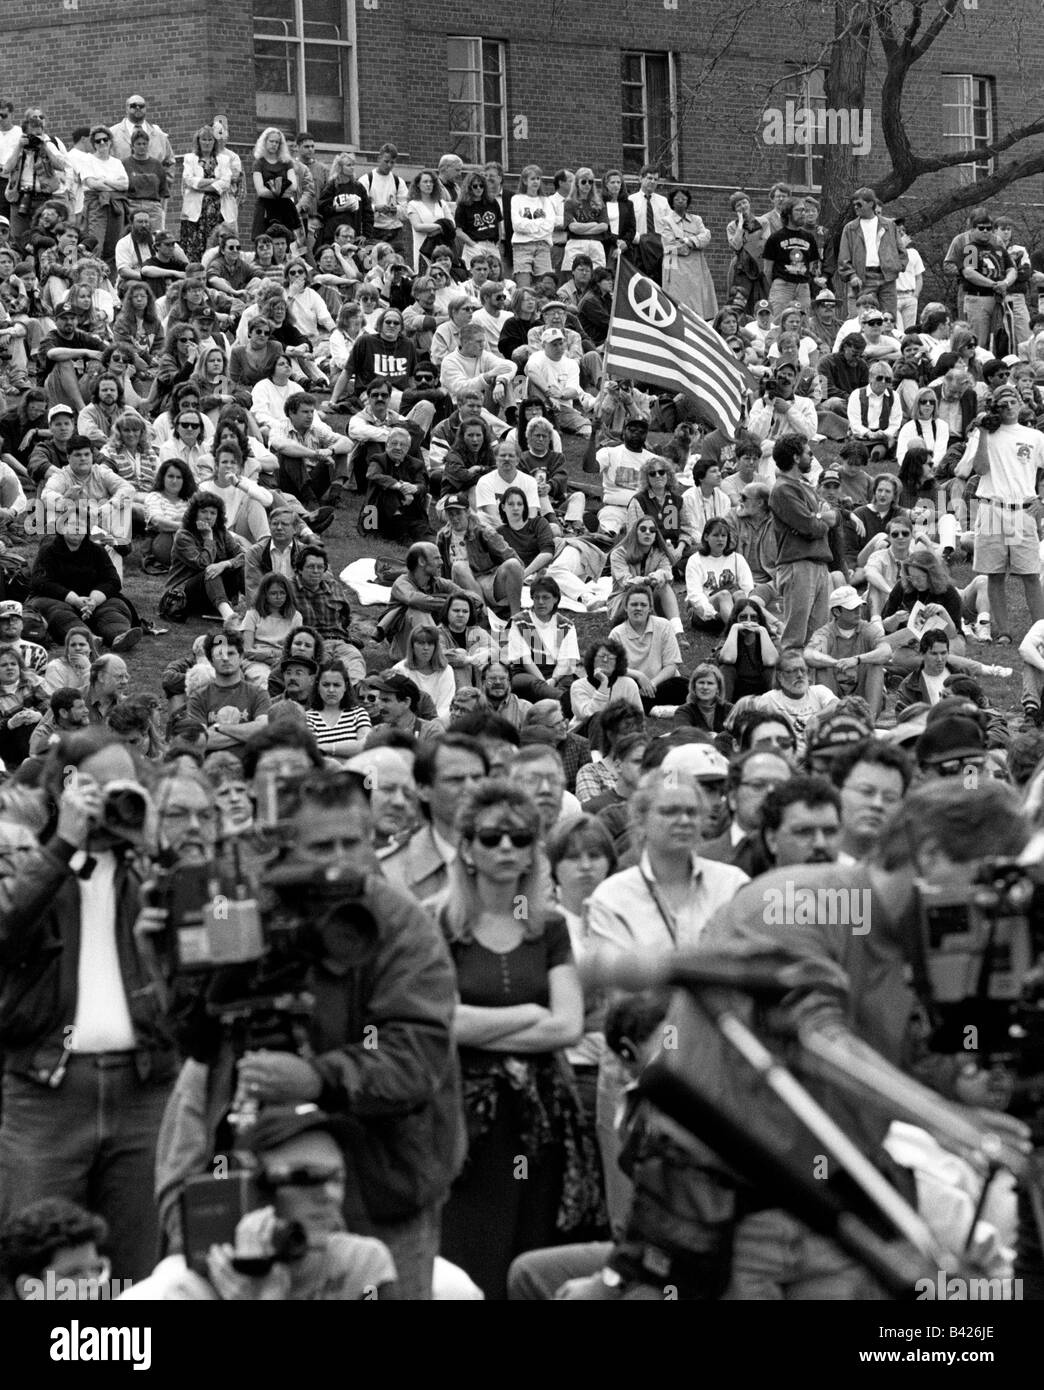 rally at kent state university on may 4, 1995, the 25th anniversary of the shootings that resulted in the killing - Stock Image